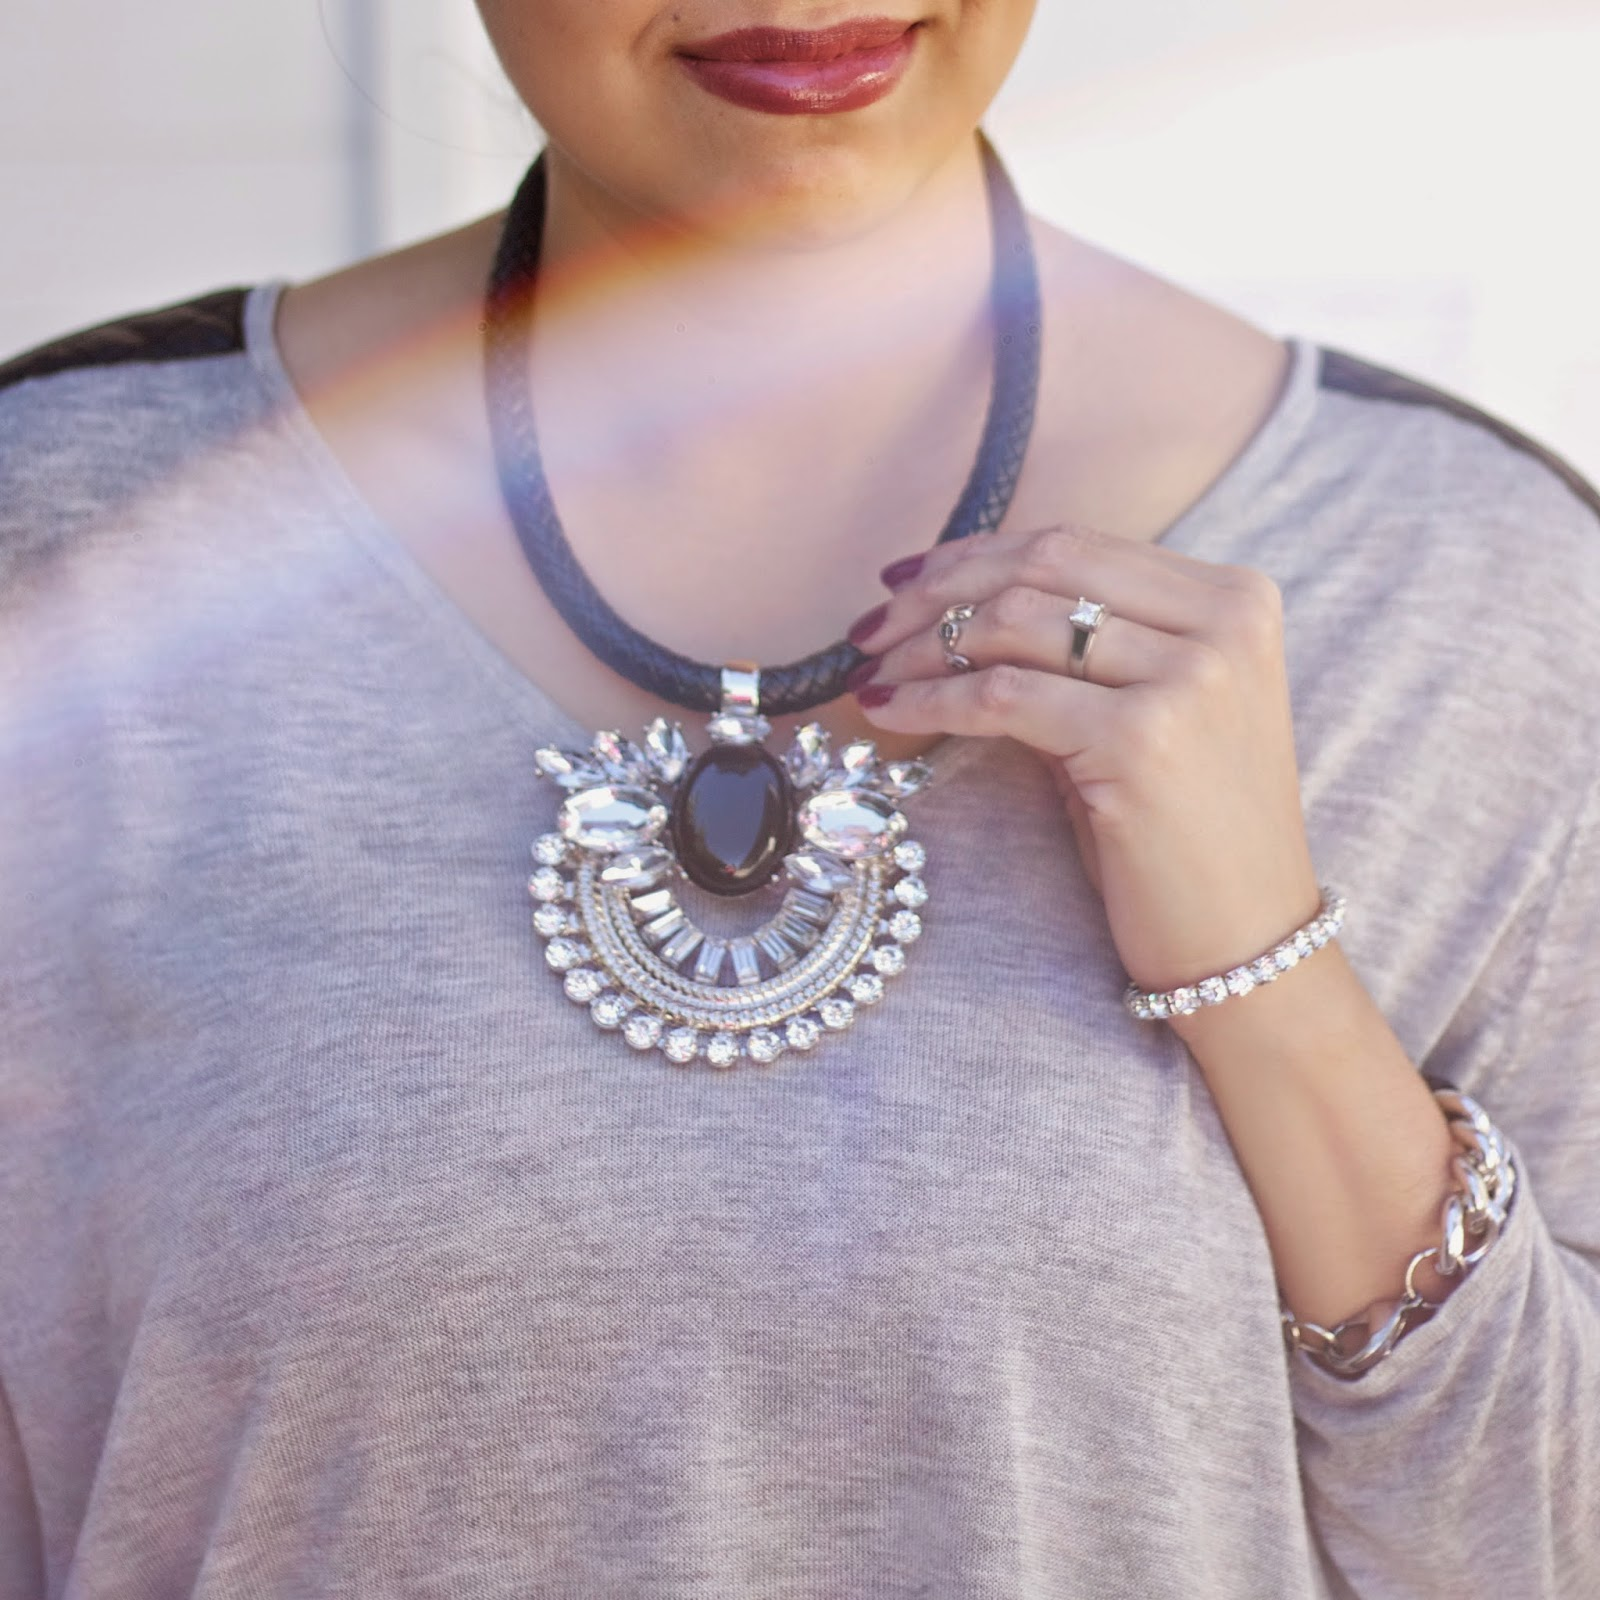 how to wear a statement necklace, topshop statement necklace, wearing statement necklaces with casual outfit, how to dress up a casual outfit, add sparkle with jewelry, statement necklace, black and sparkly necklace, bareminerals moxie lipstic, how to wear bareminerals moxie lipstick